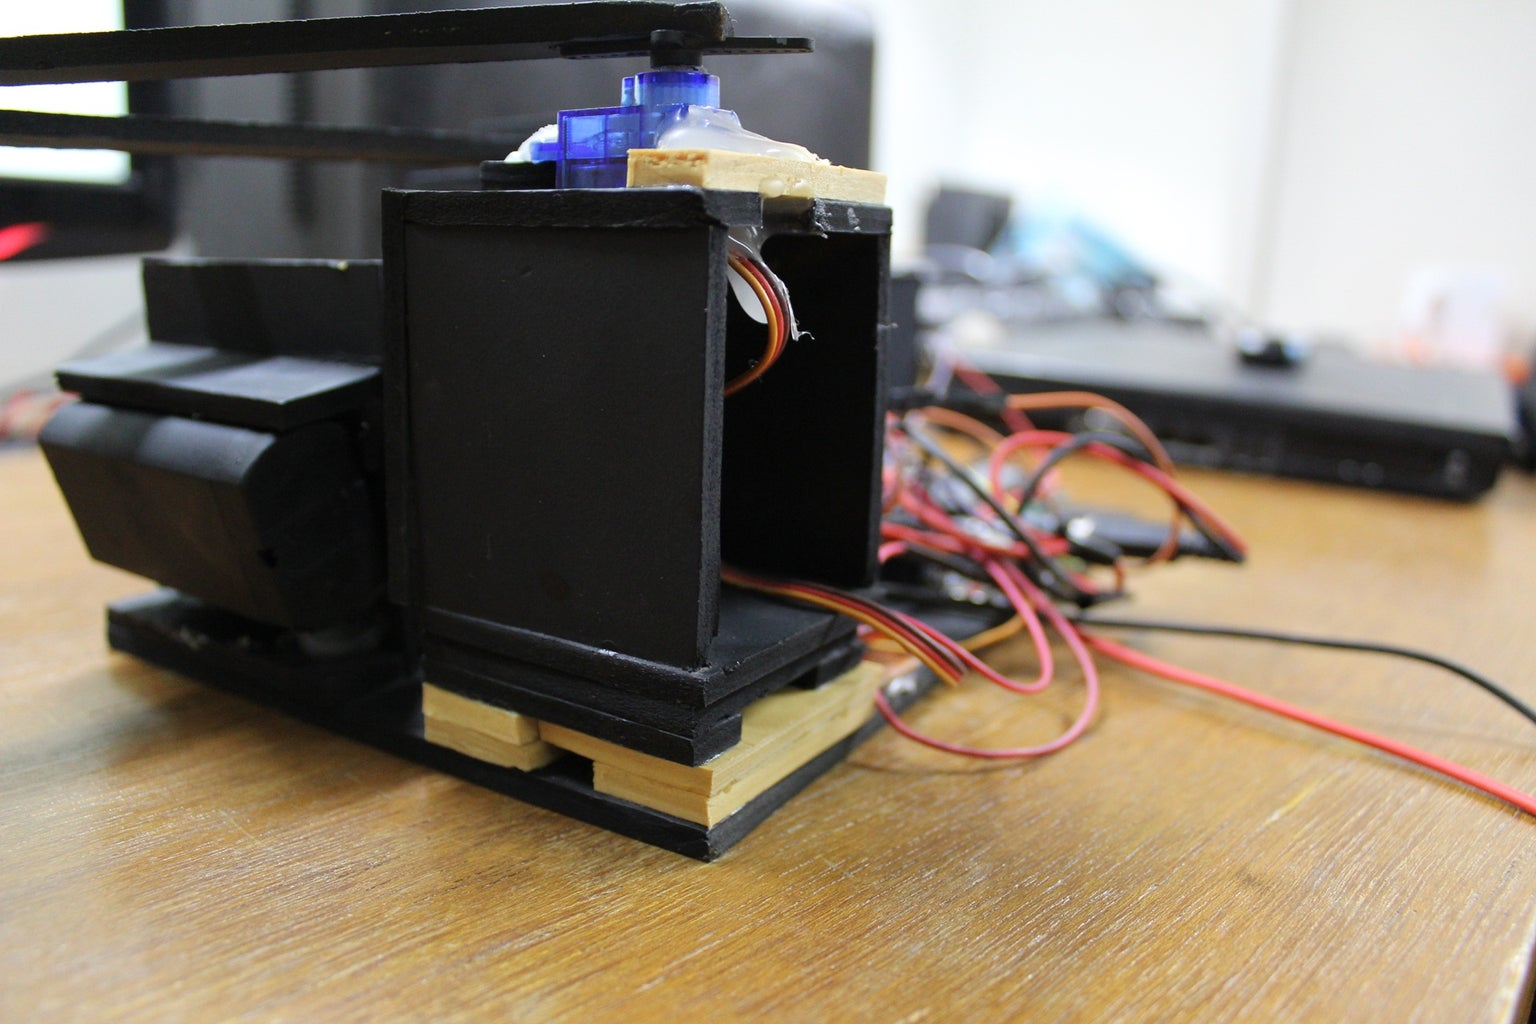 Moving the X Axis Platform